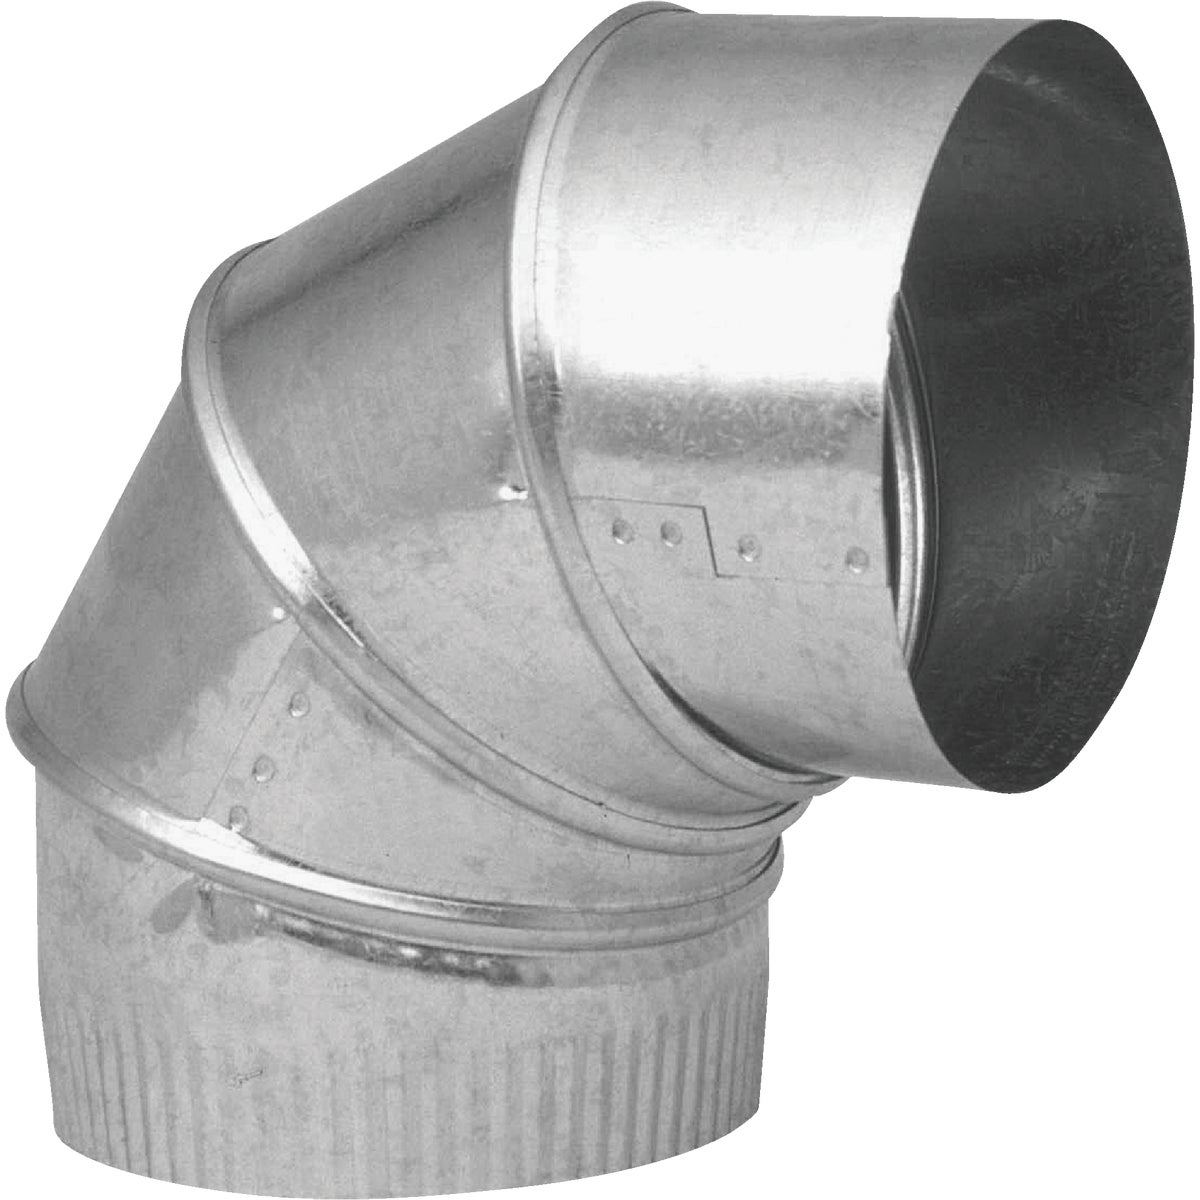 "6"" 24GA GALV ADJ ELBOW - GV0293-C by Imperial Mfg Group"